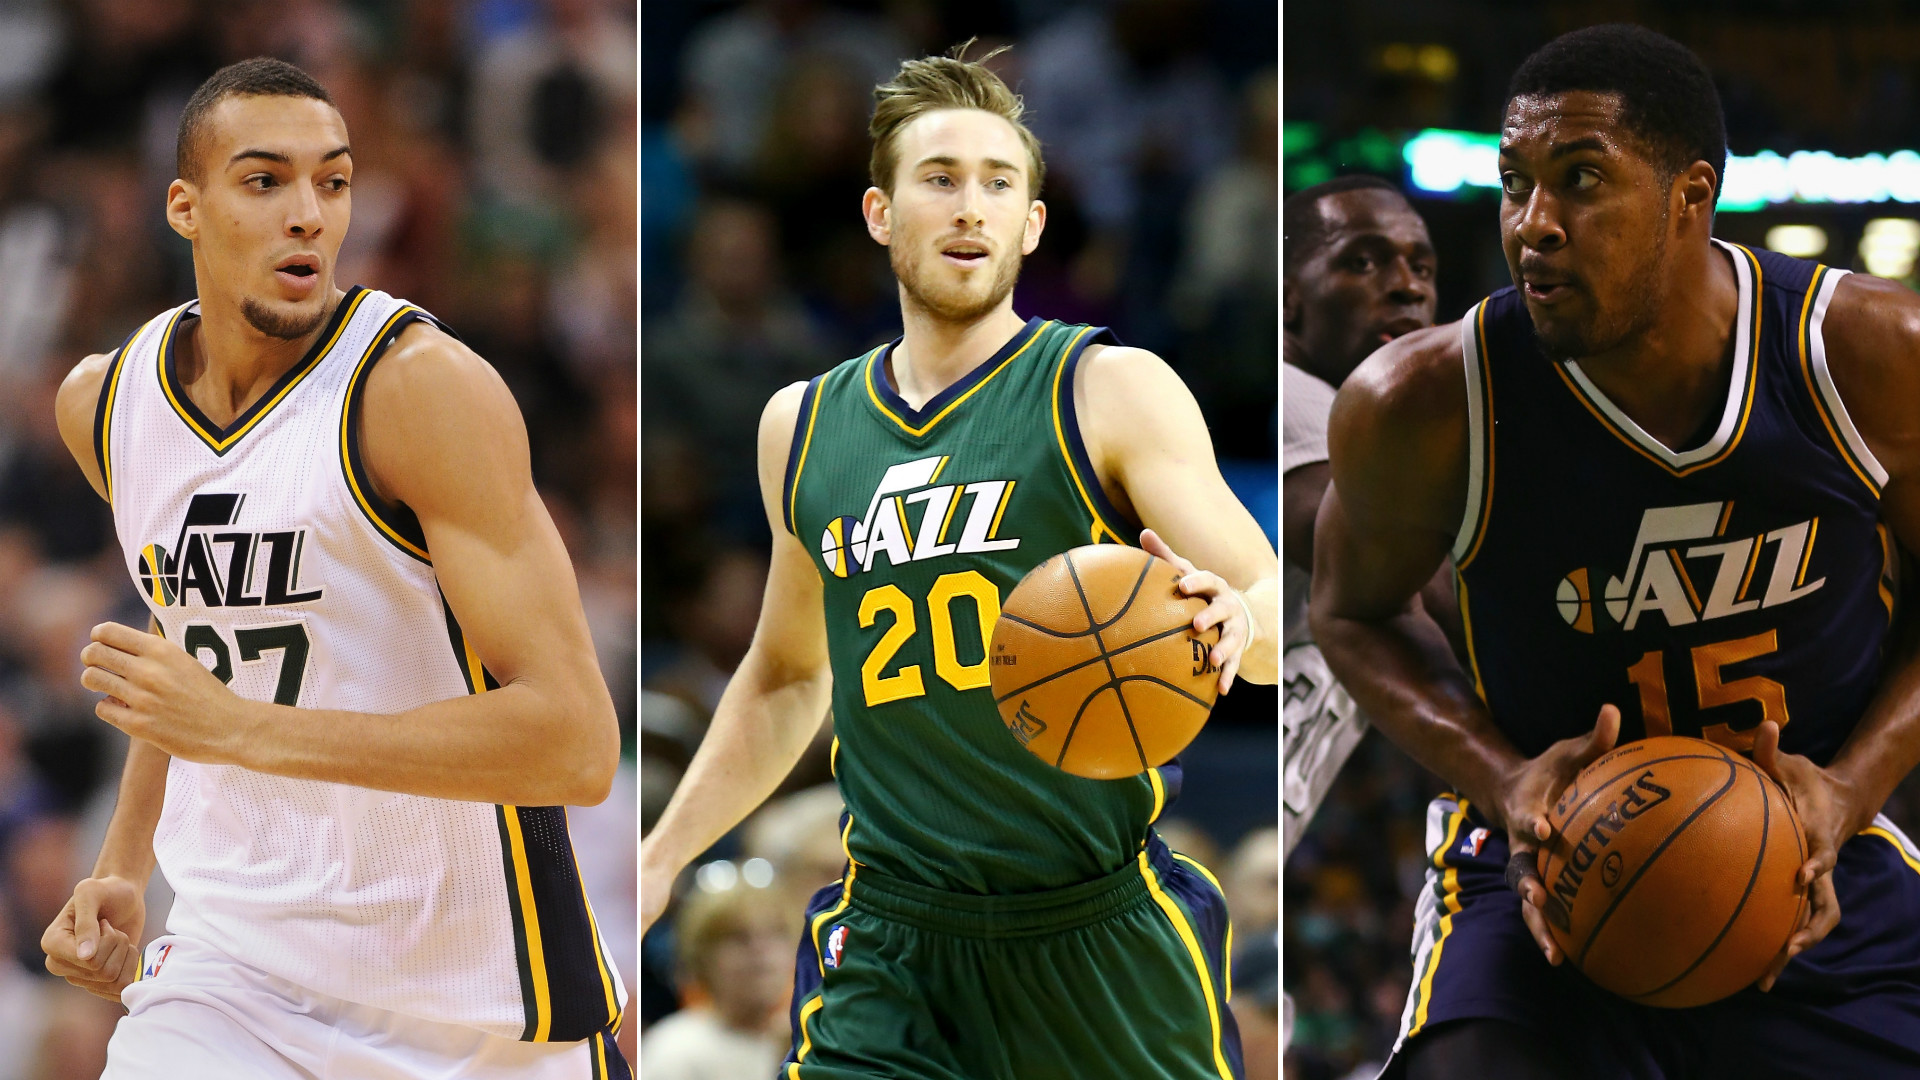 Res: 1920x1080, Utah Jazz's bright future could prove very, very expensive down the road |  NBA | Sporting News